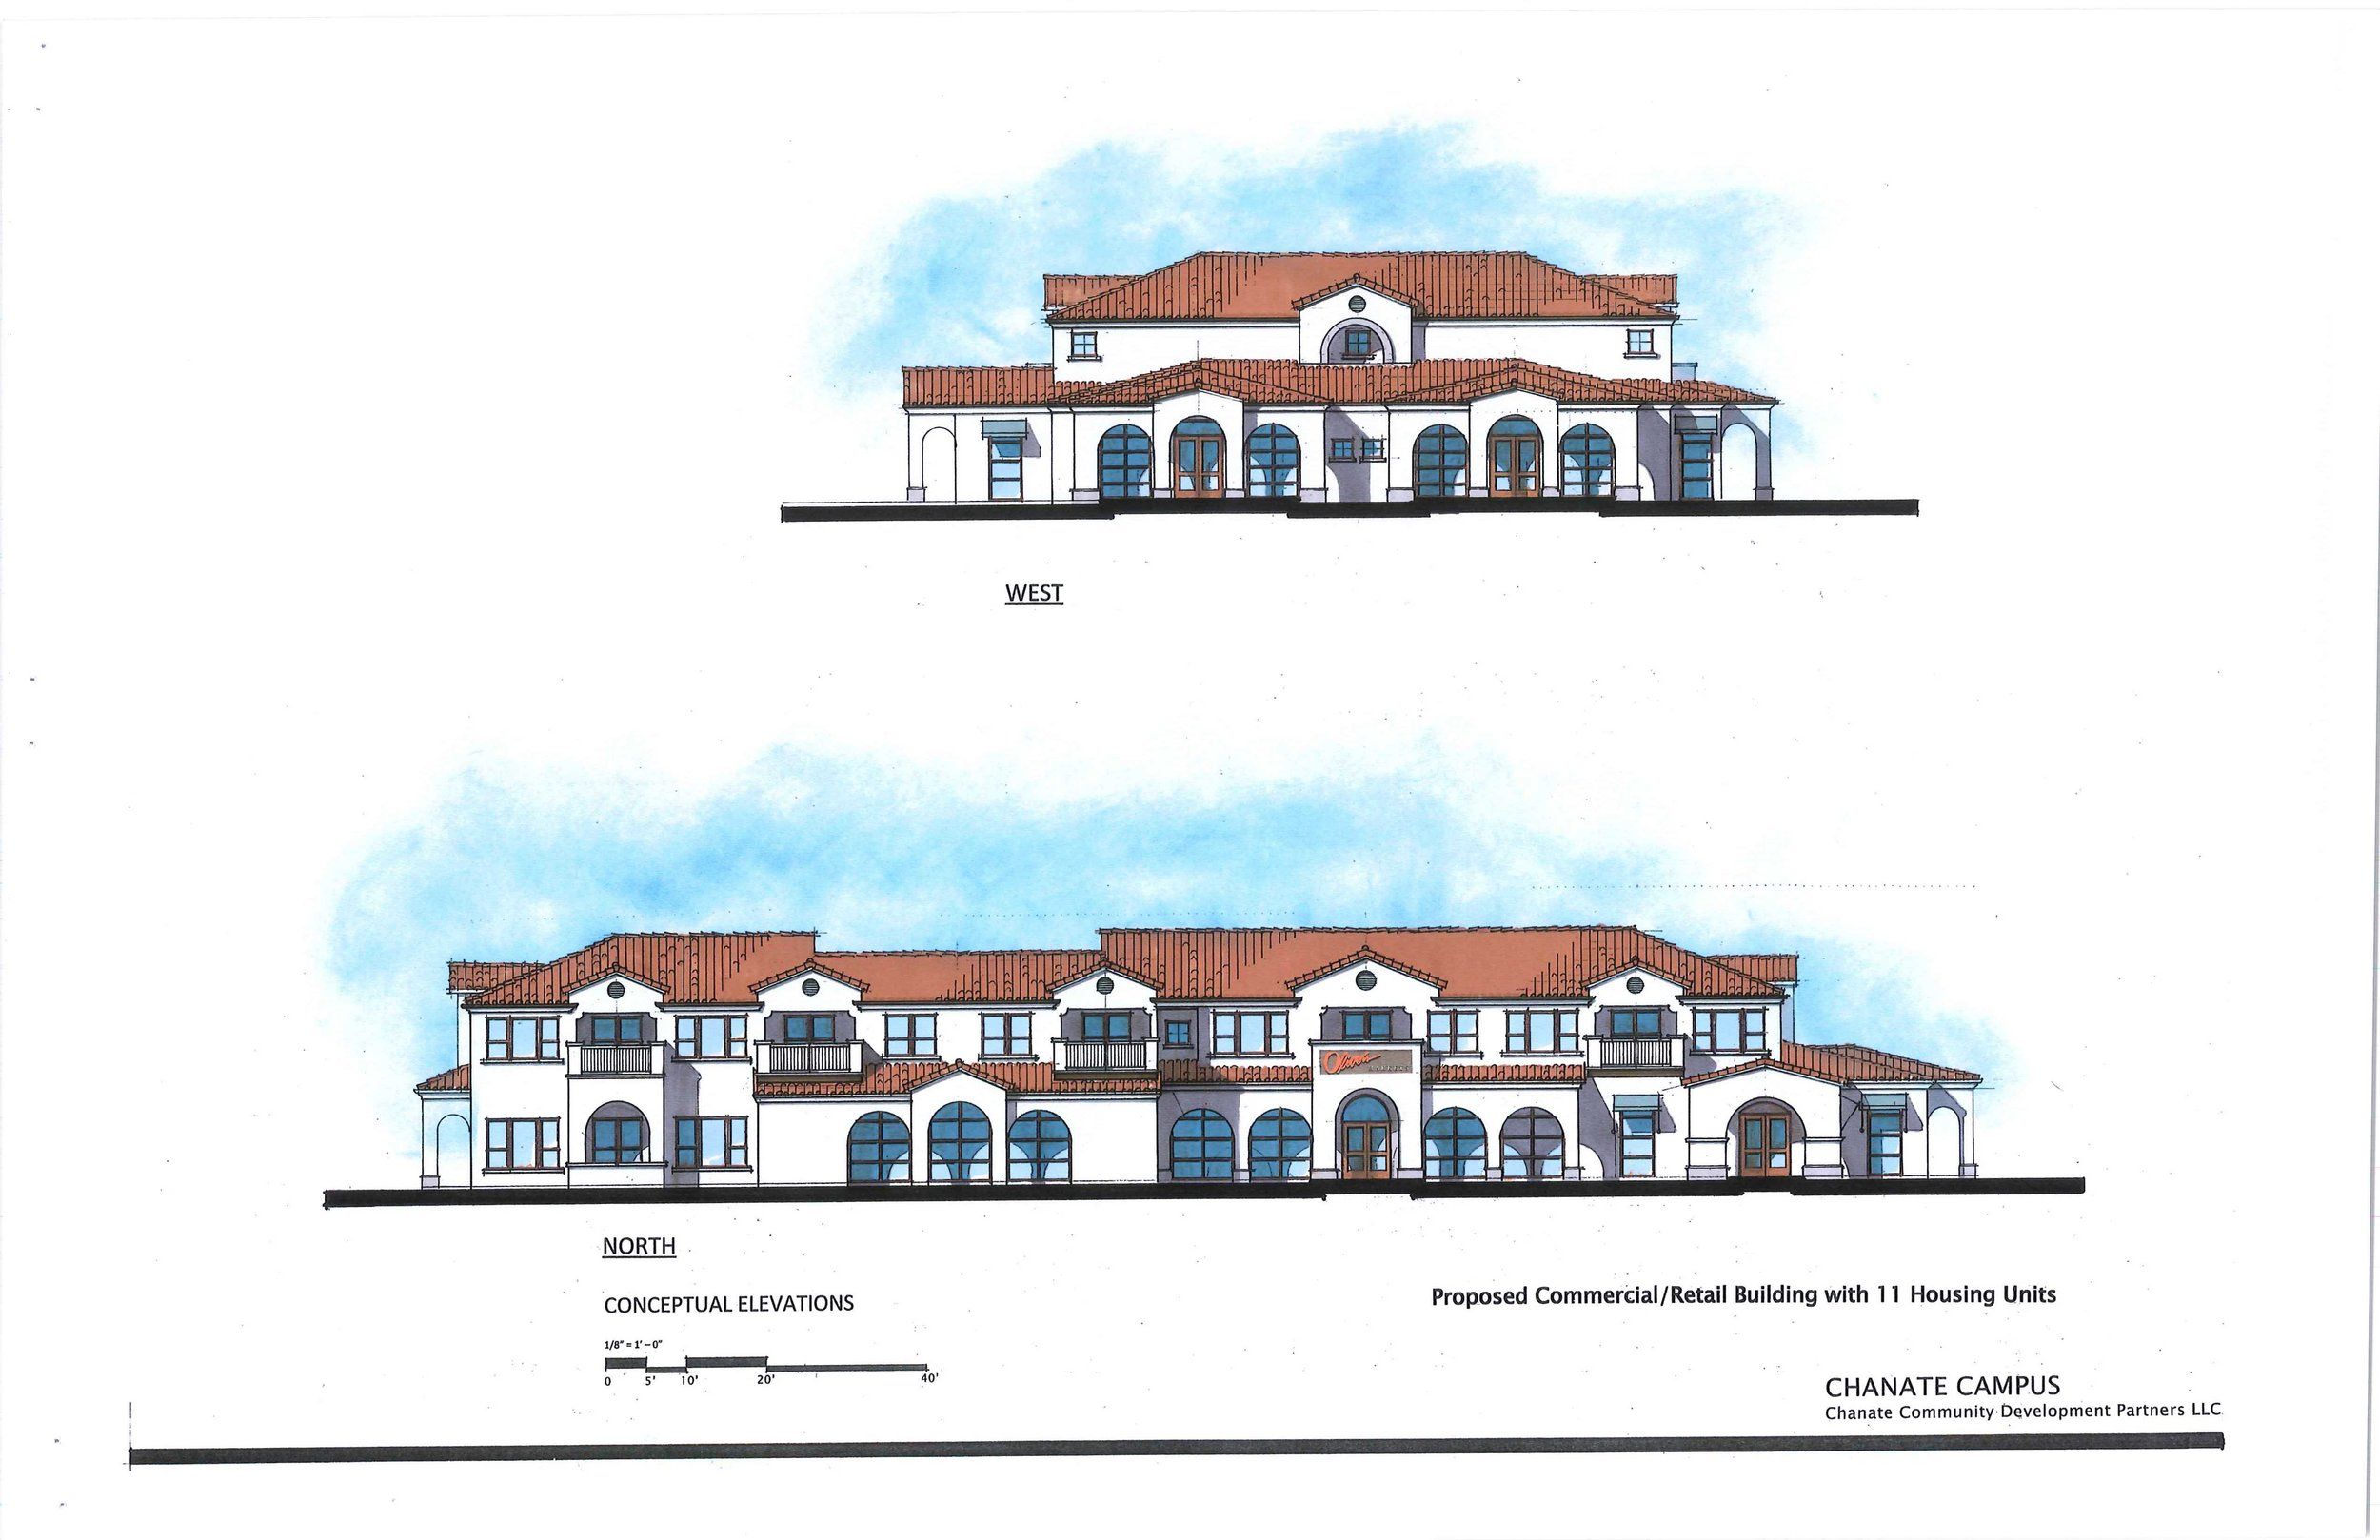 This is the conceptual elevation of the commercial building that will face Chanate road. It will house a grocery store along with other small businesses. Eleven housing units are planned for above the commercial entities.